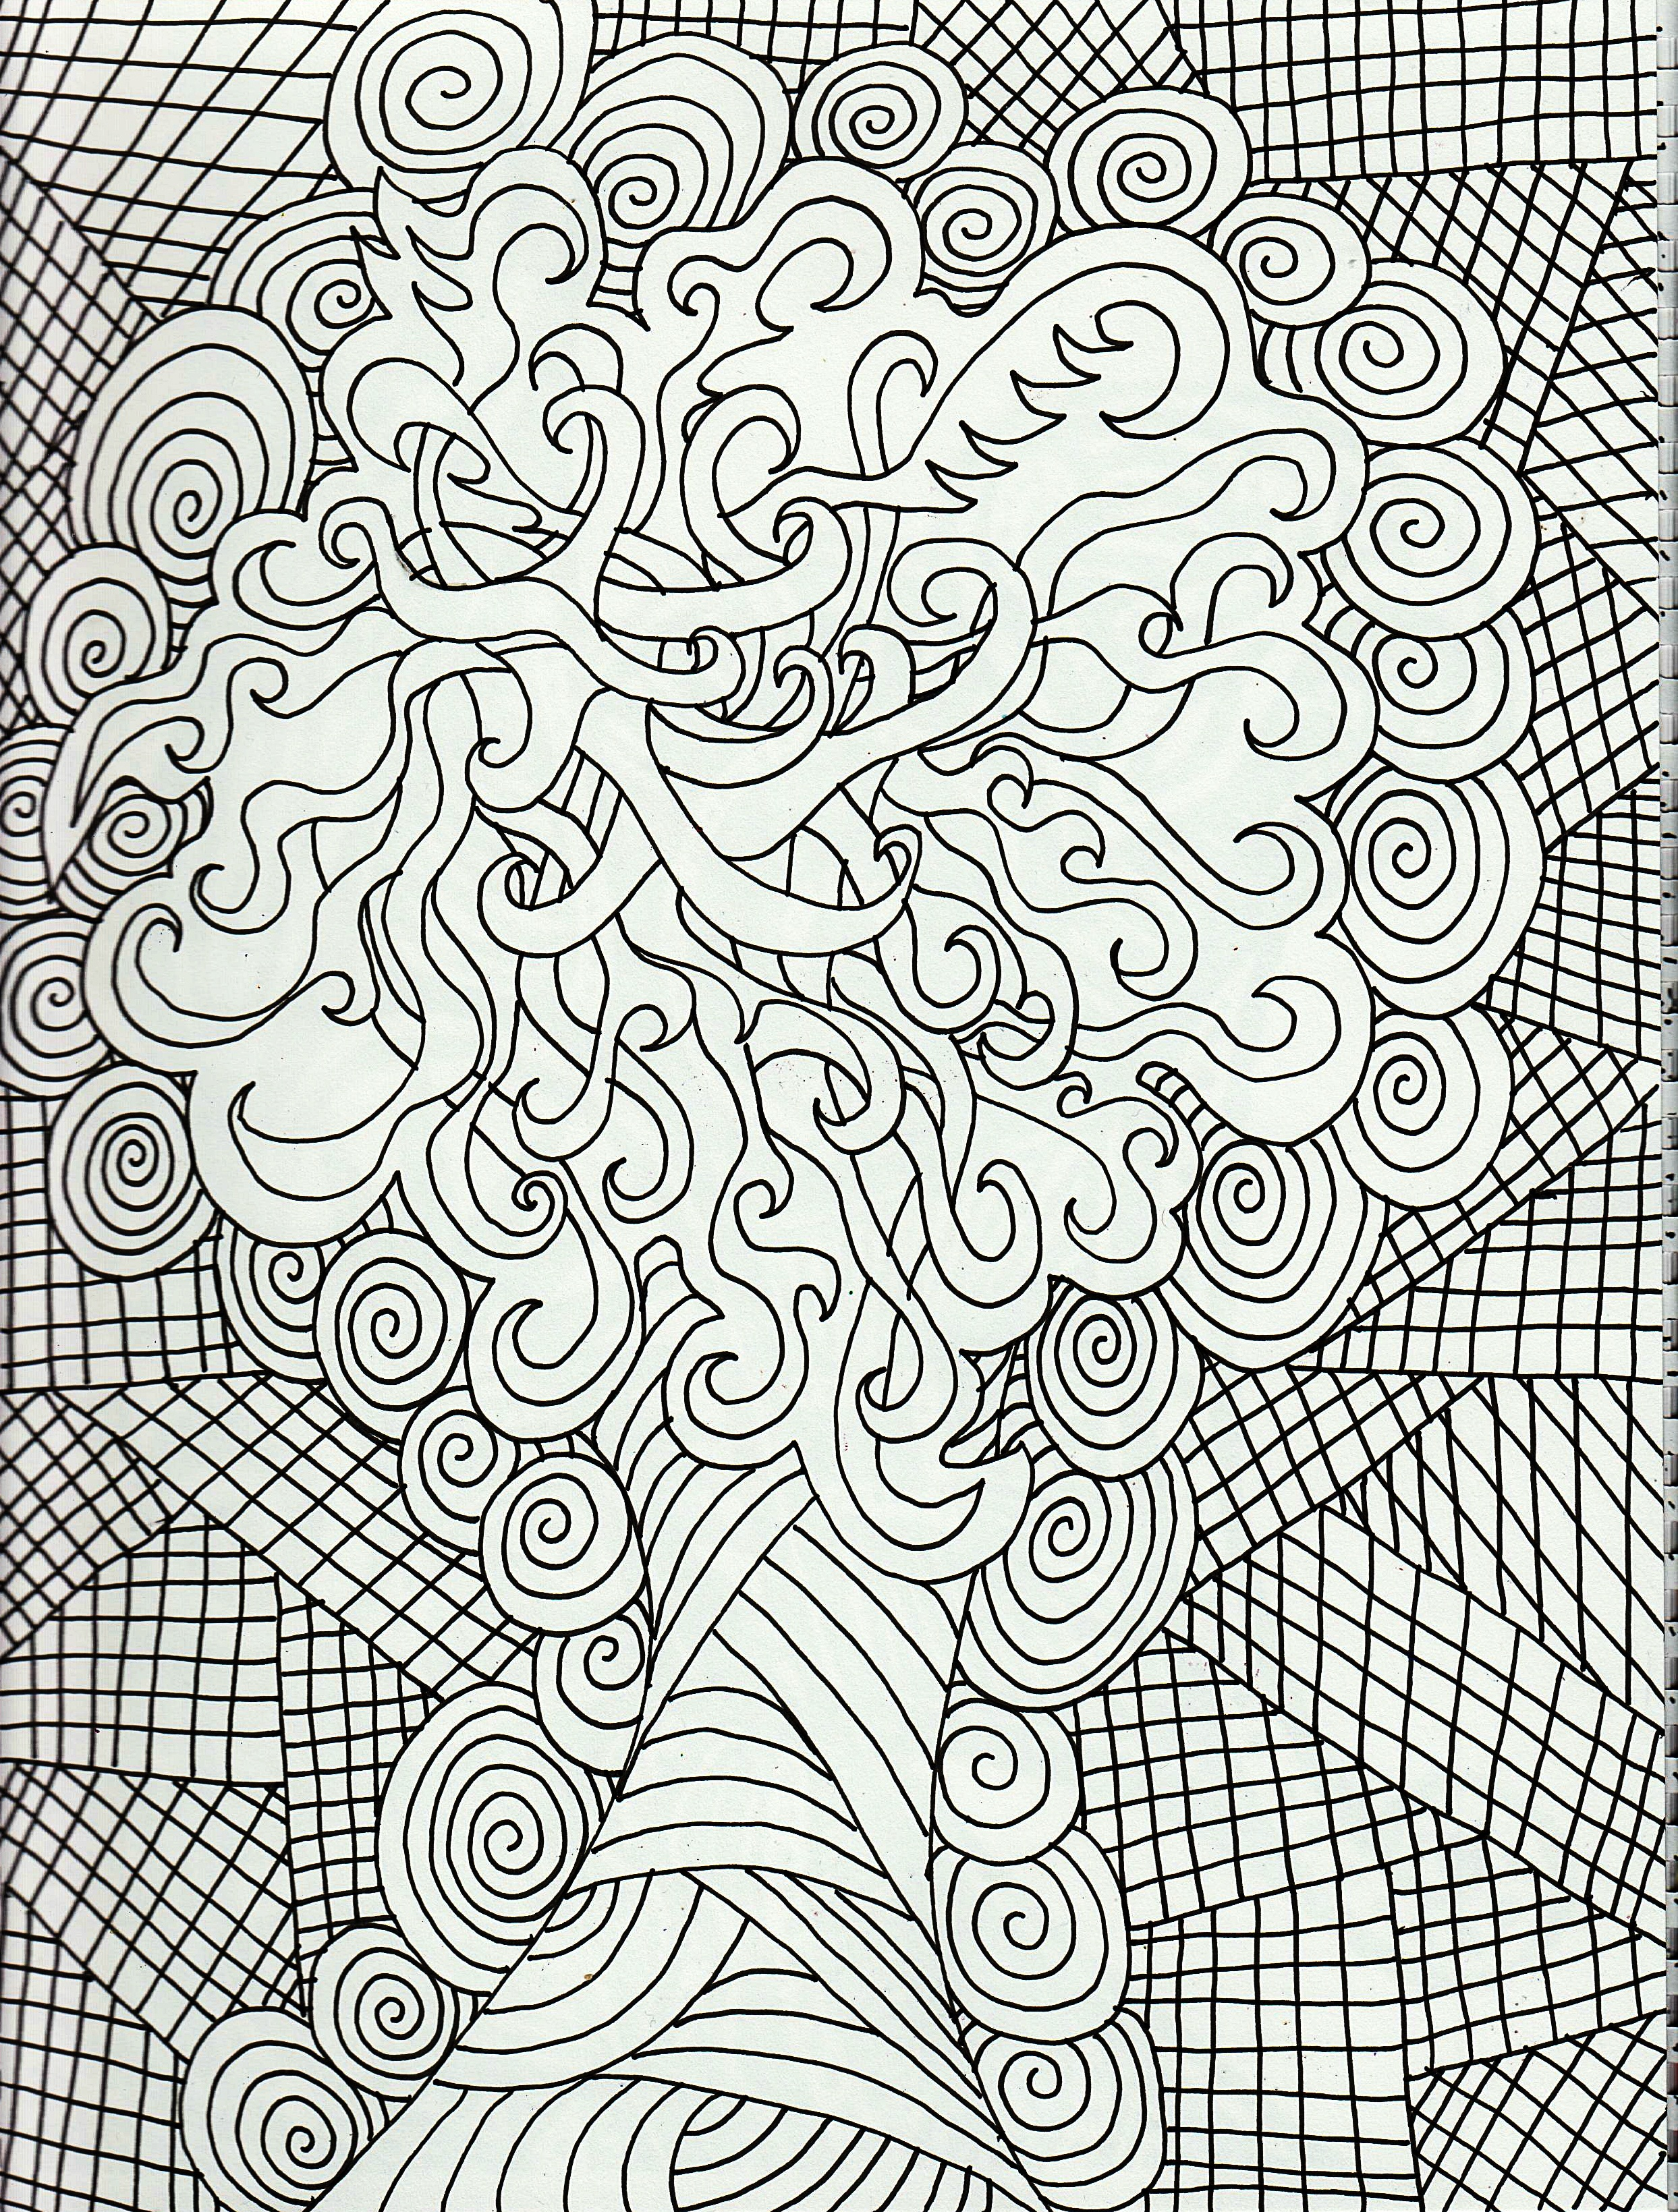 coloring pages for adults adults also can color the white 2487x3279